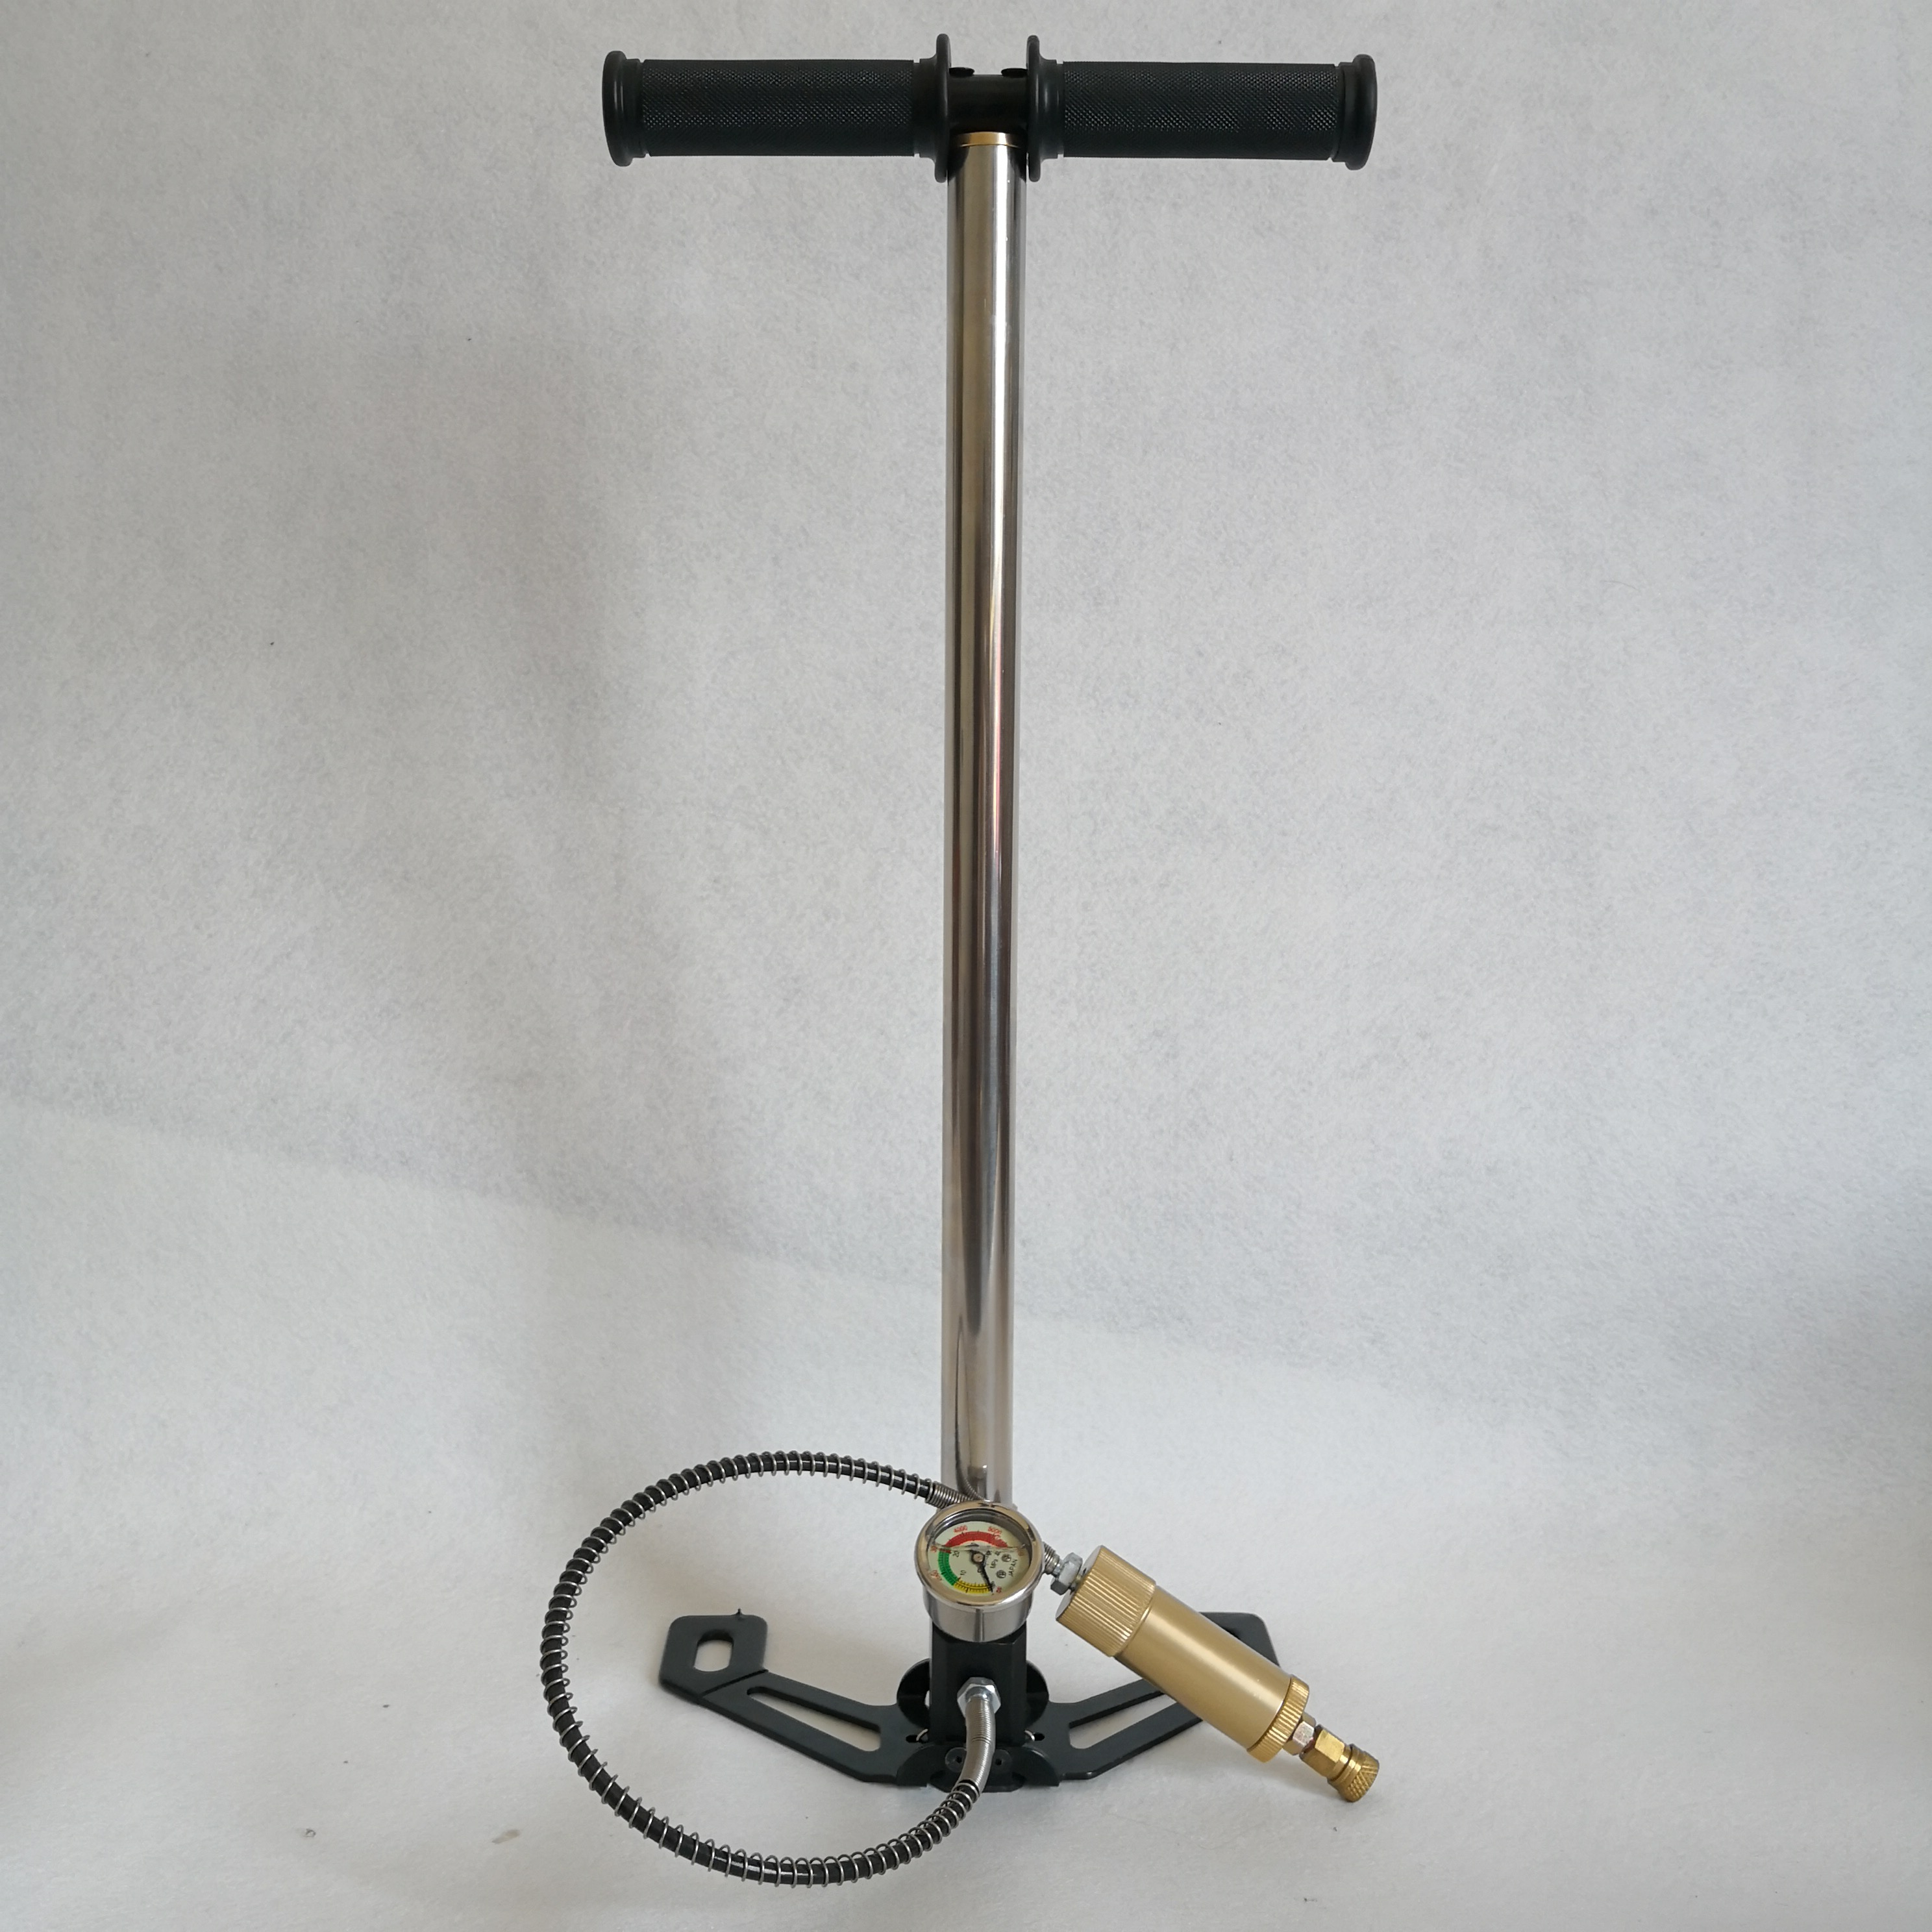 300bar 4500PSI pcp hand pump three stage high pressure paintball air pump with air filter